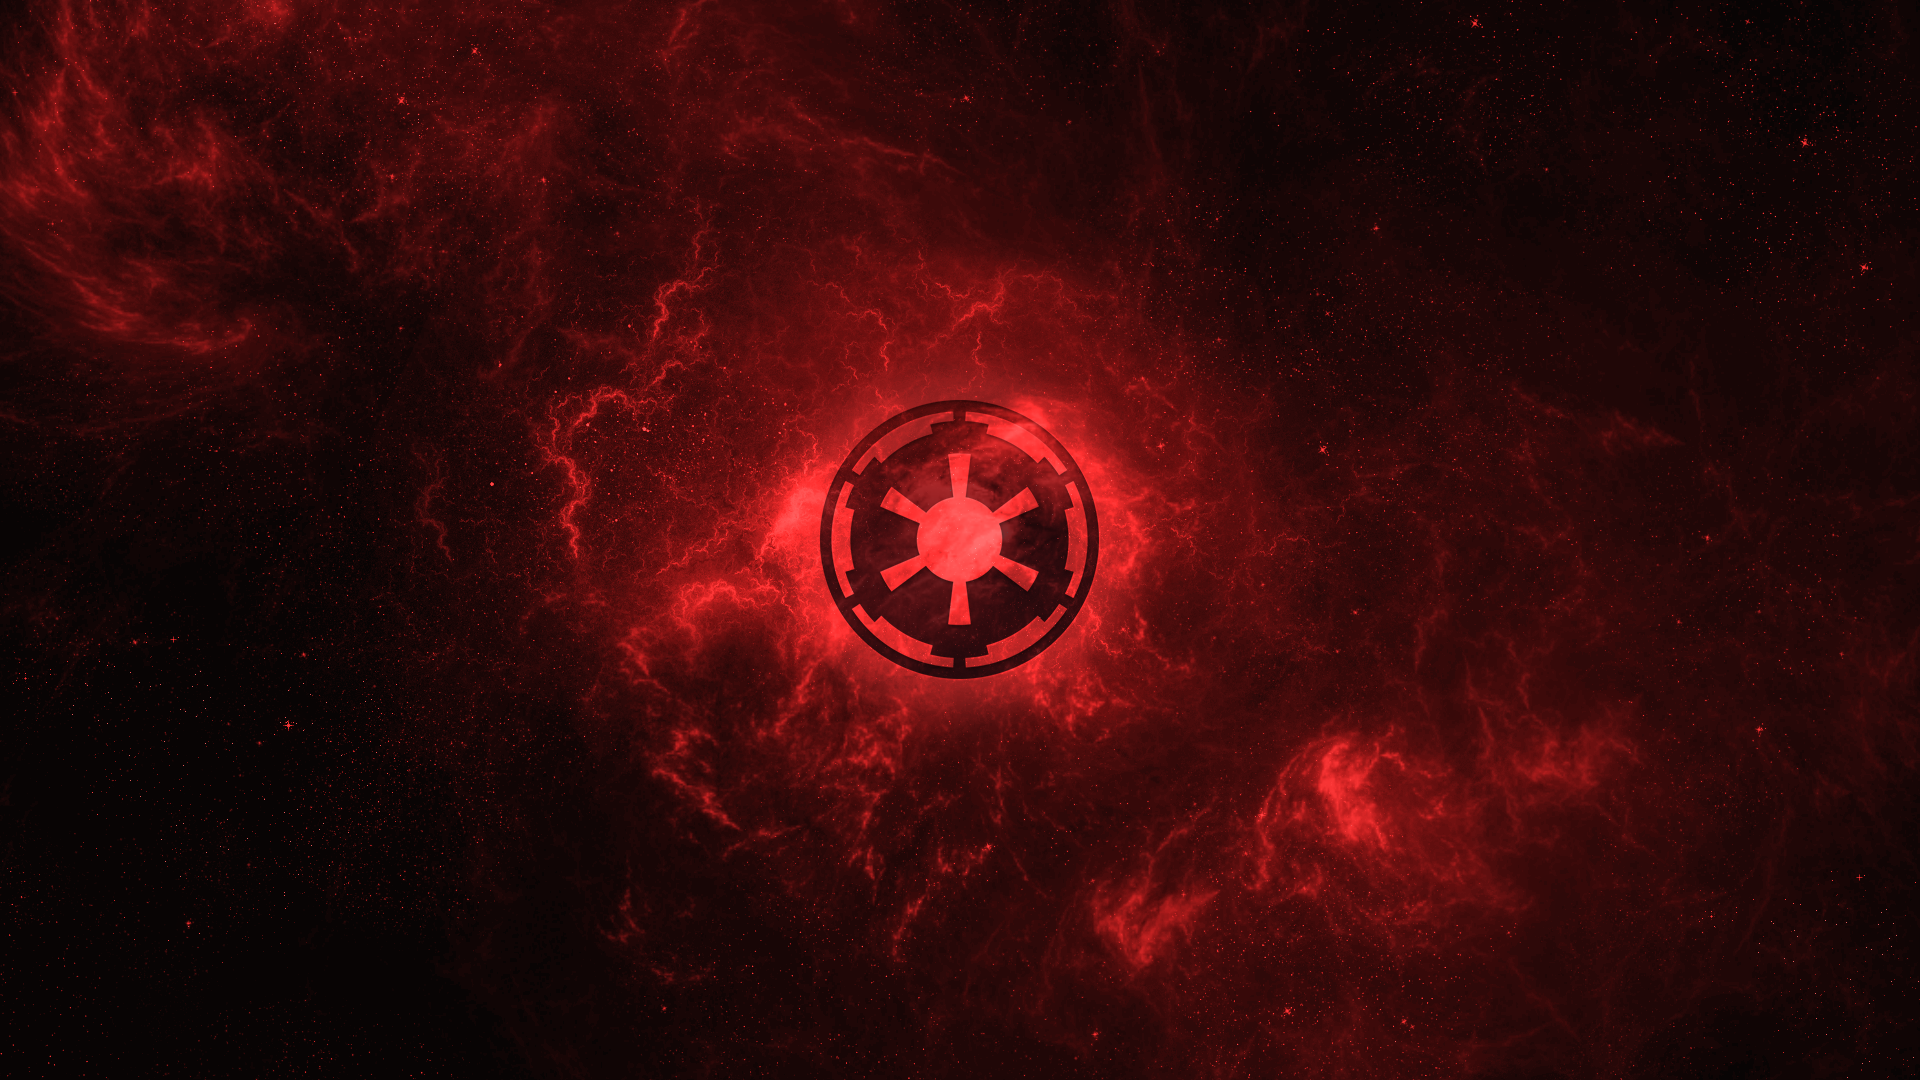 Star Wars Galactic Empire Wallpaper 1920 X 1080 Px By Tana Jo On Deviantart